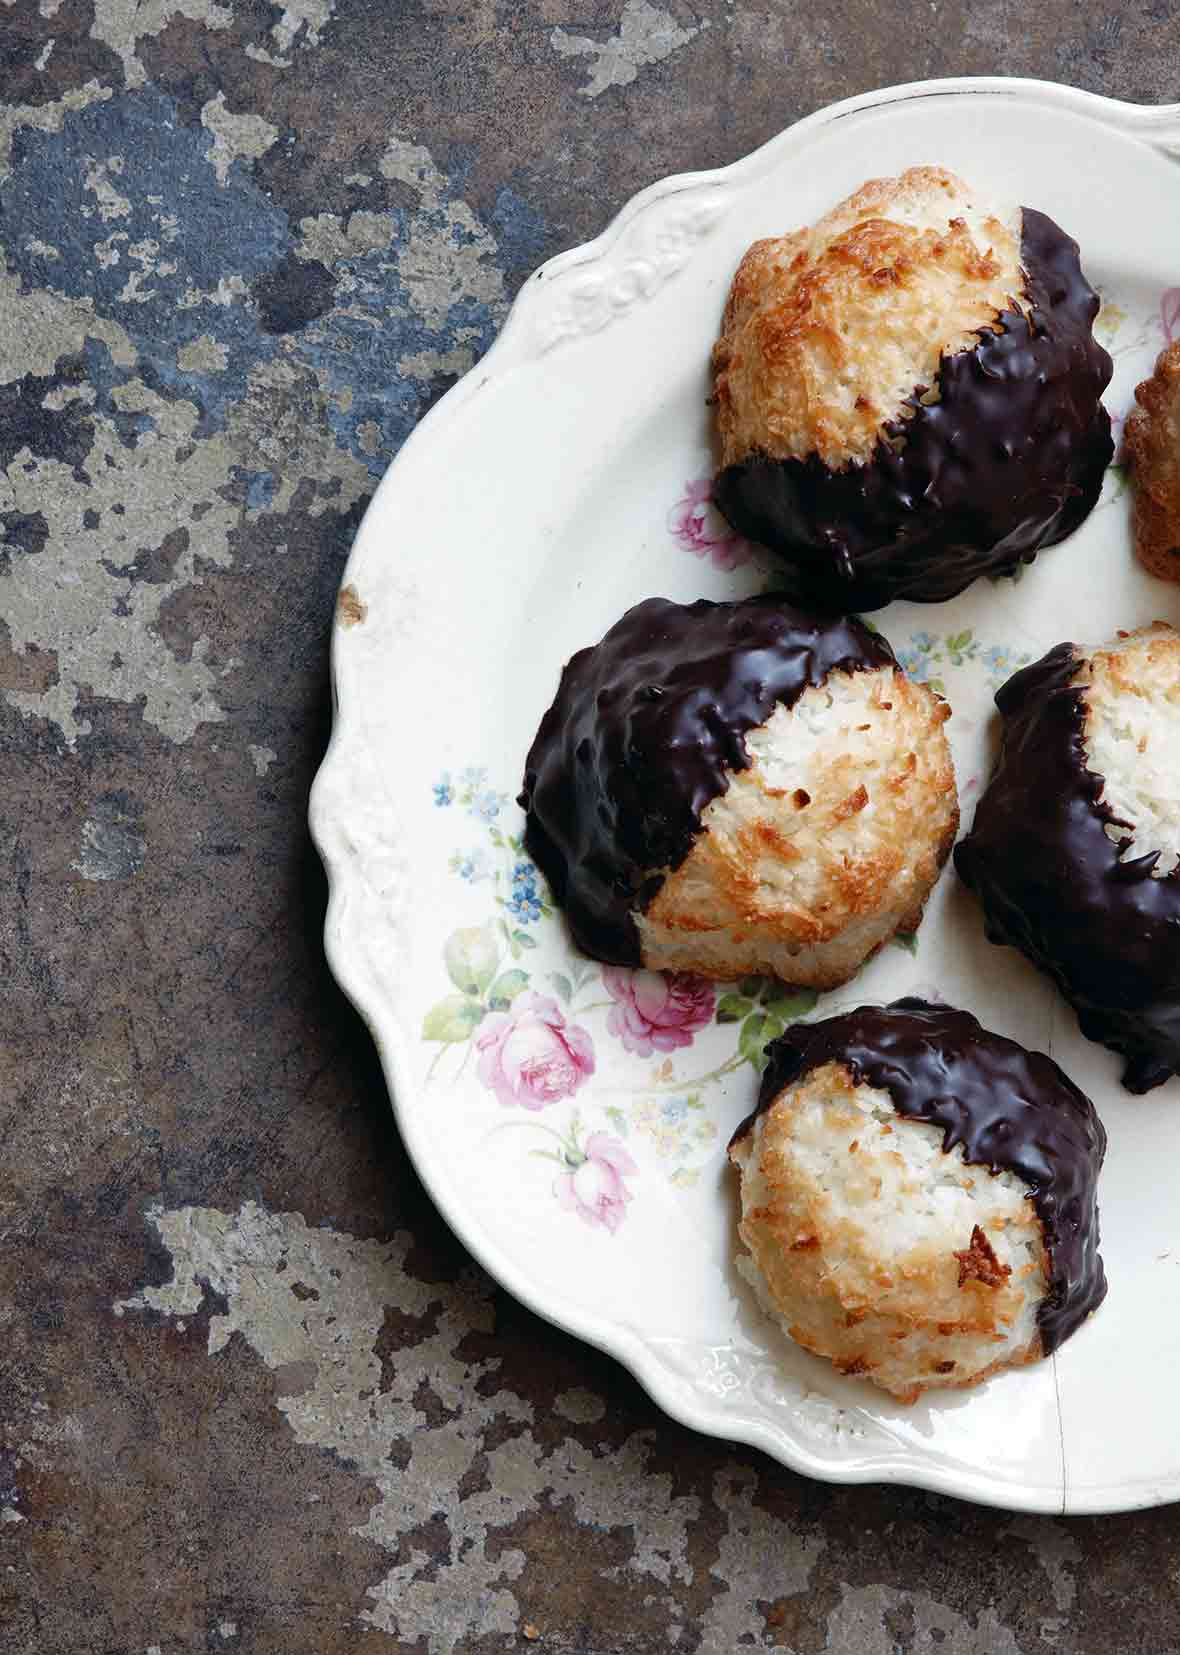 Five coconut macaroons dipped in chocolate arranged on a floral-patterned china plate.